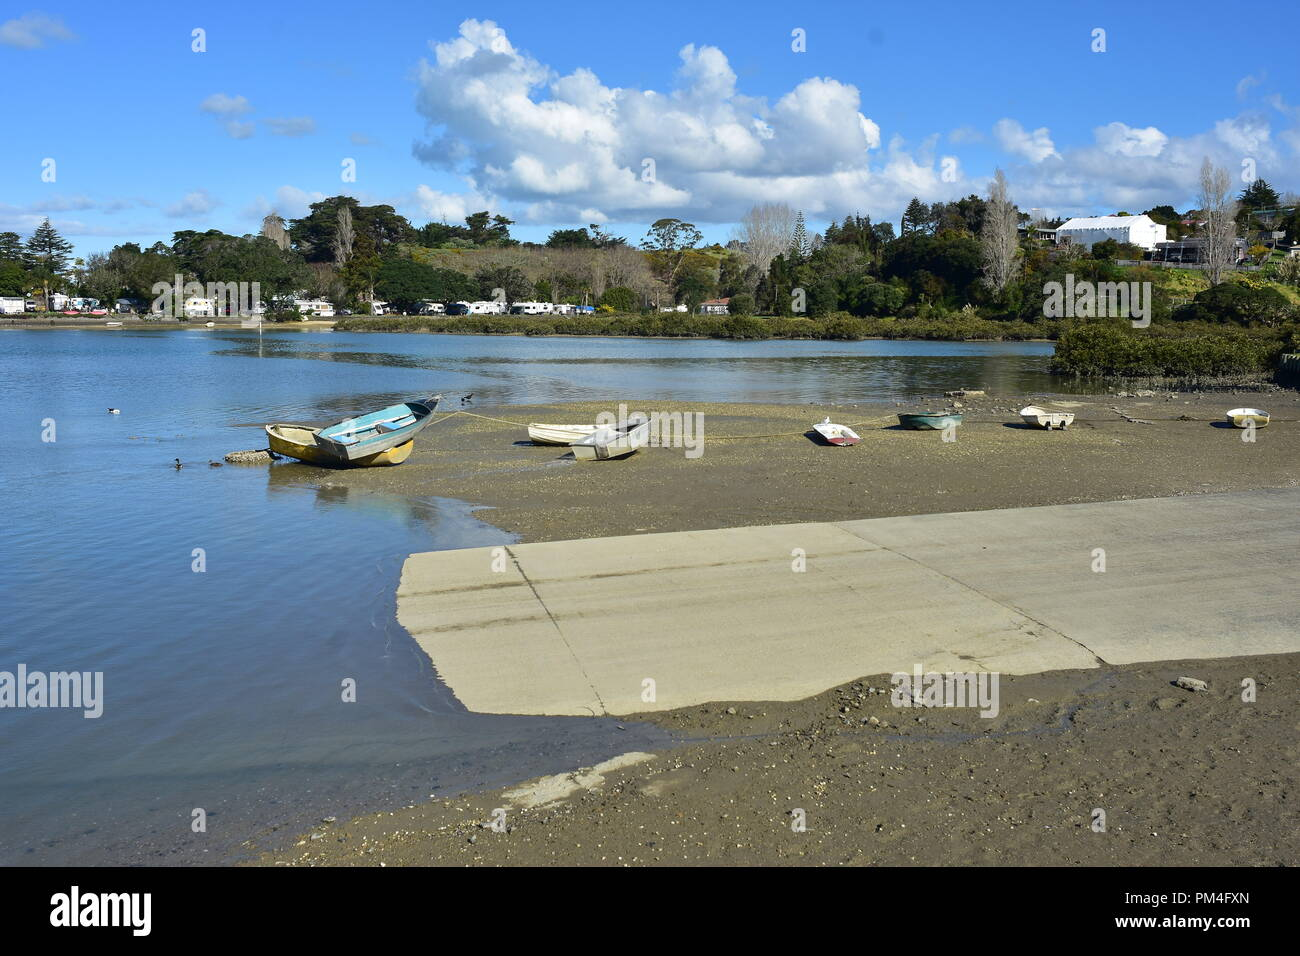 Small dinghies on mud flats next to concrete boat ramp in estuary at low tide. Stock Photo